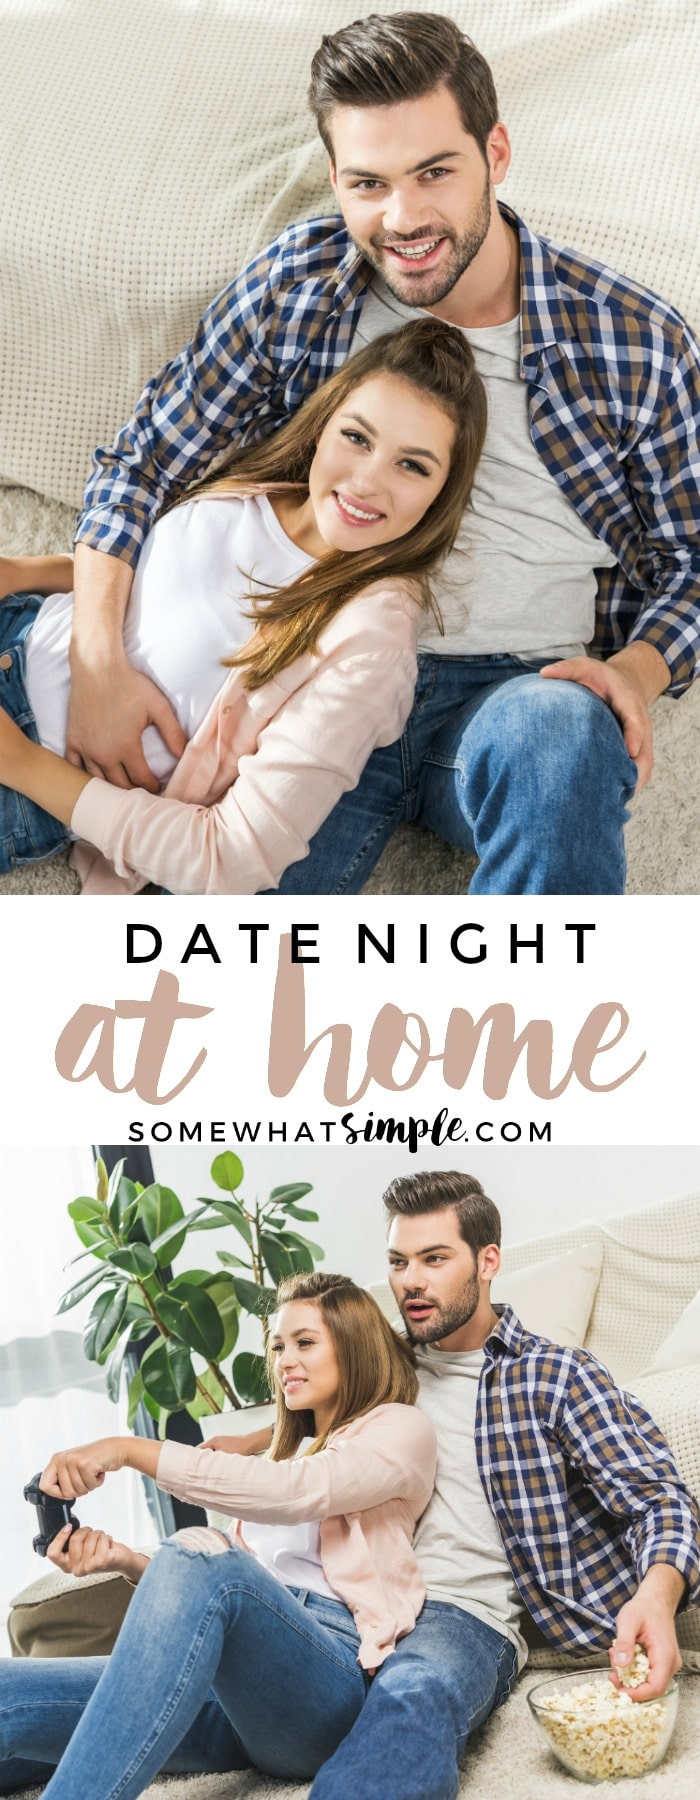 Planning a date night at home is a great way to have some casual fun with your sweetheart!